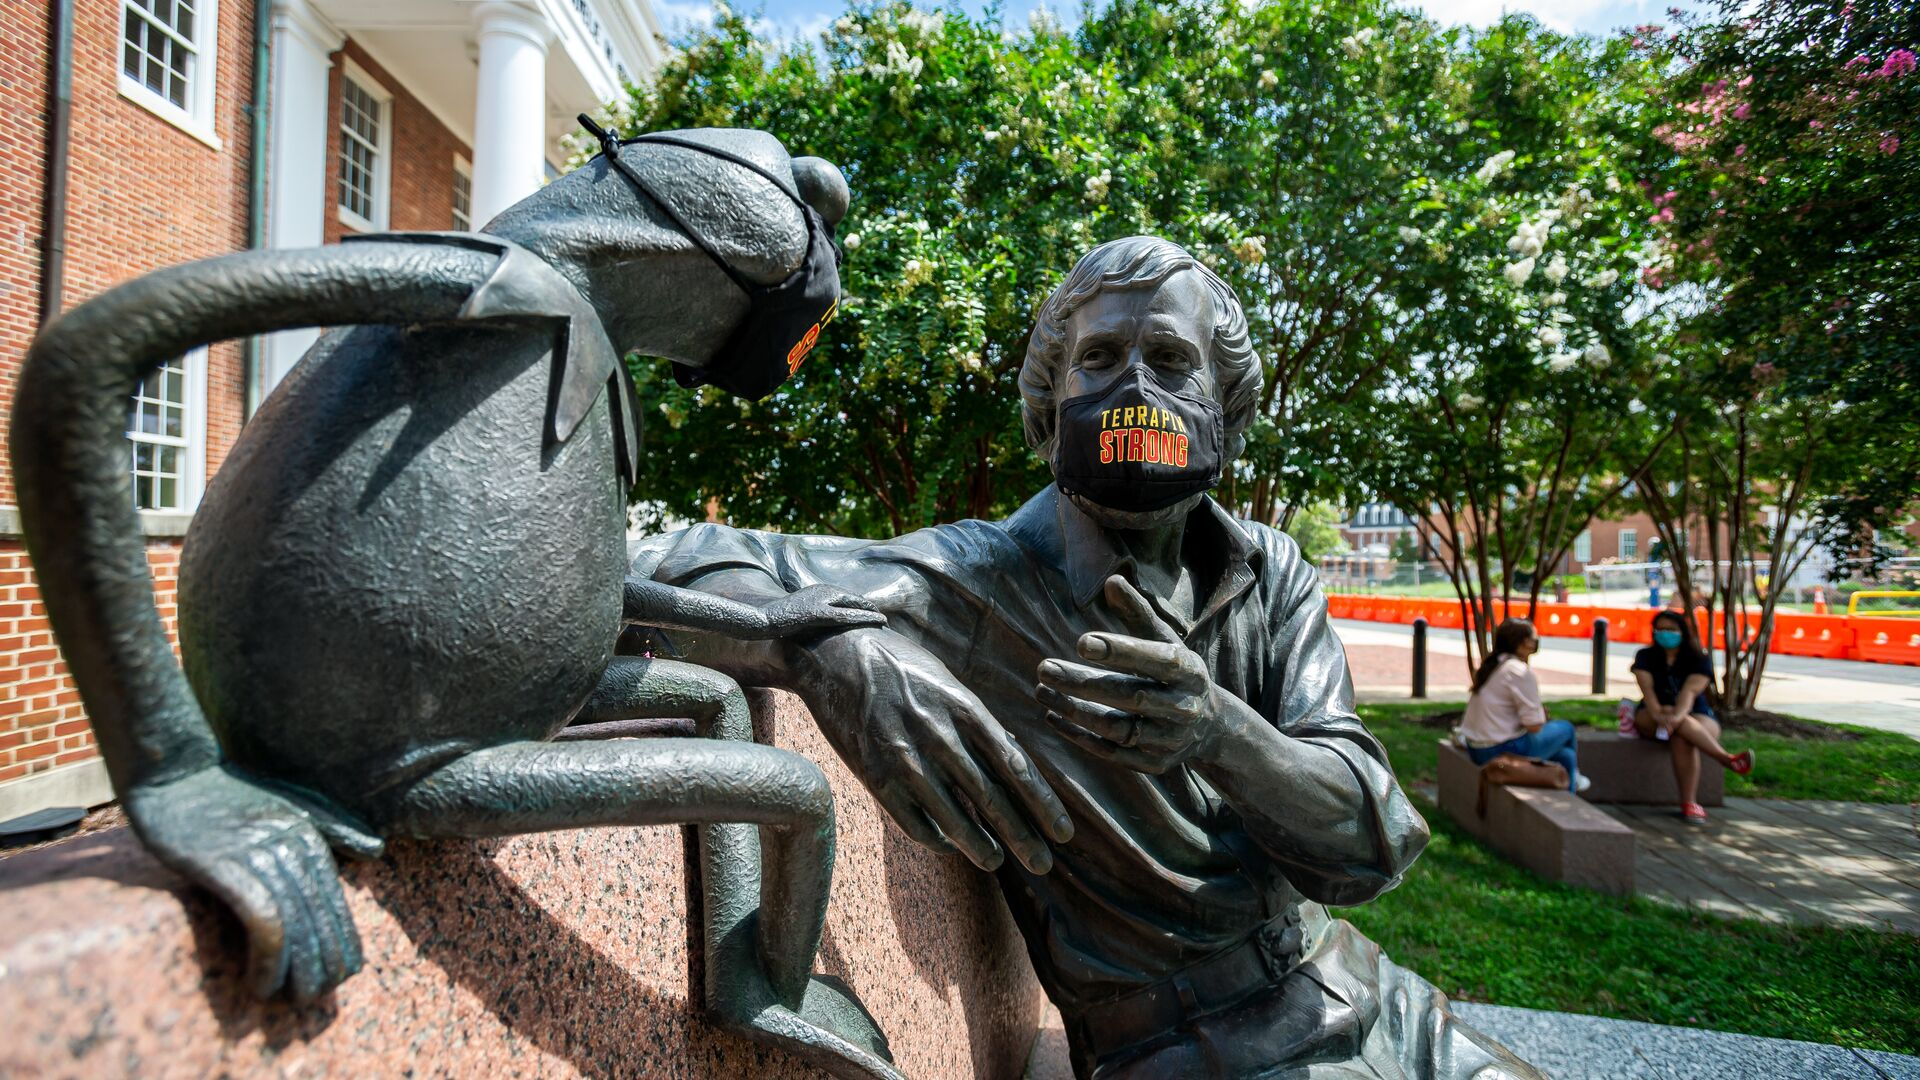 Jim Henson Statue and Memorial Garden in front of Stamp Student Union with the Terrapin Strong branded face mask.